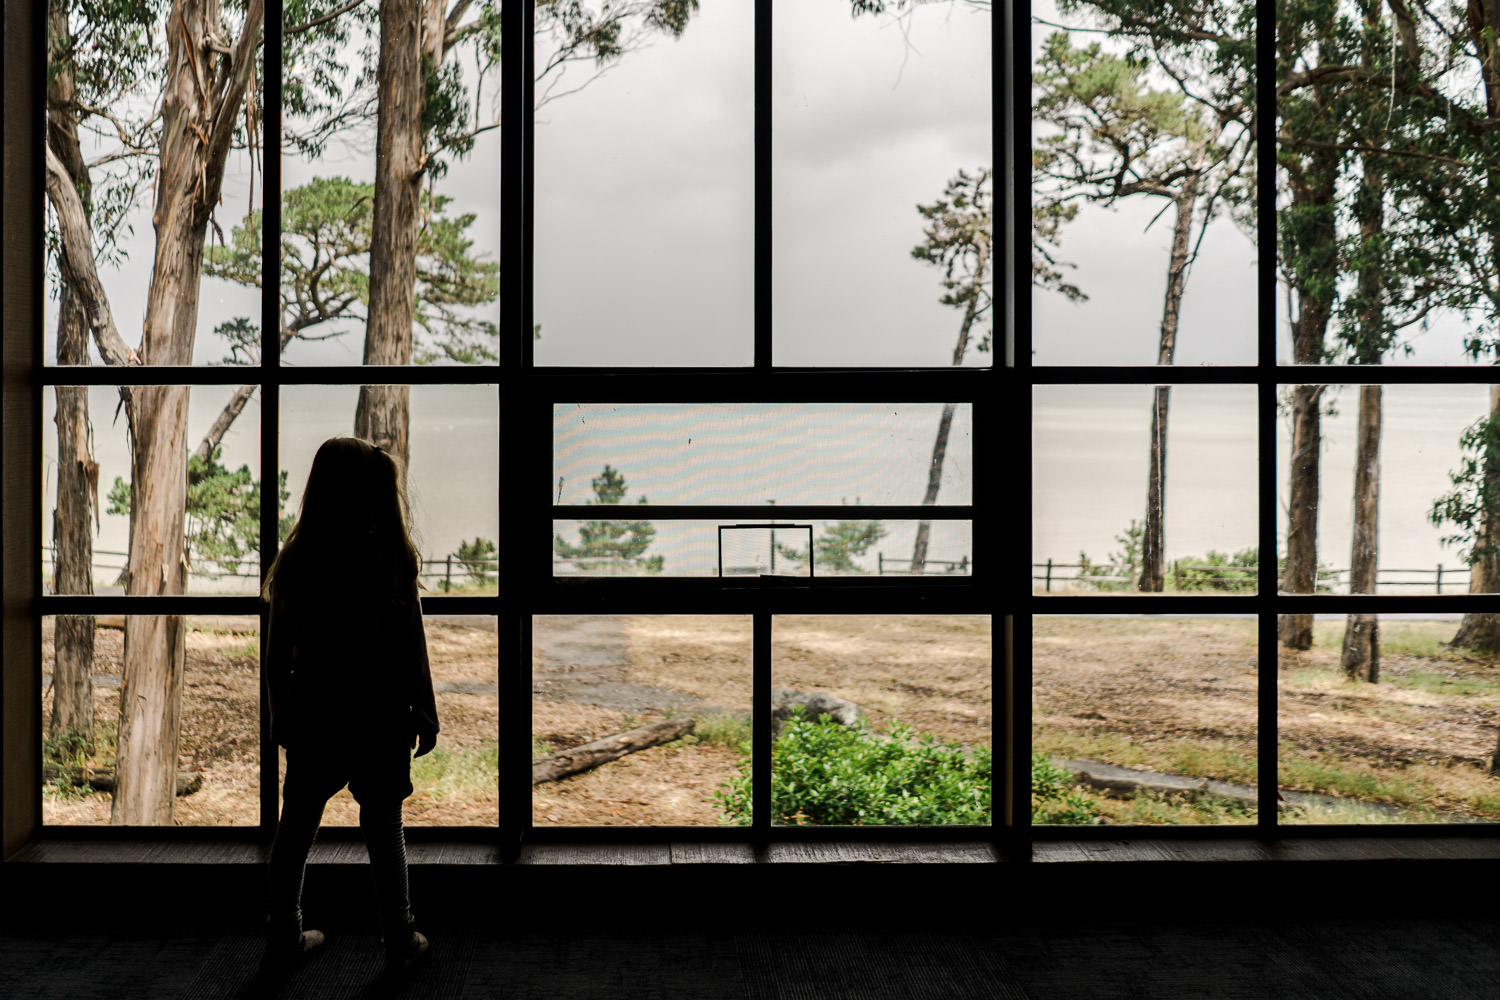 A little girl looks out a window at the SF Bay.